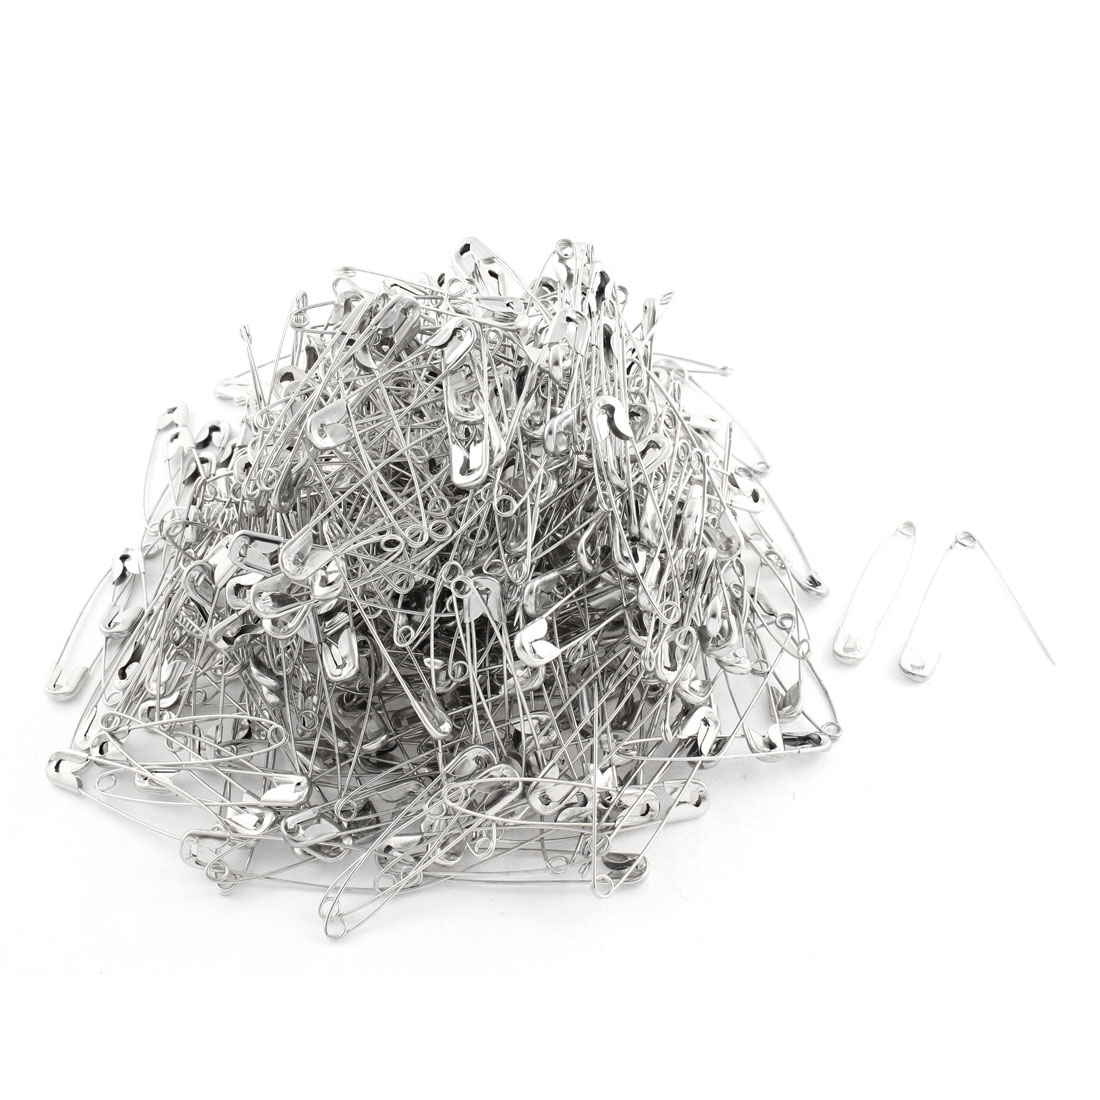 Silver Tone Hobby Craft Gear Repair Size 4 Industrial Safety Pin 500 Pcs